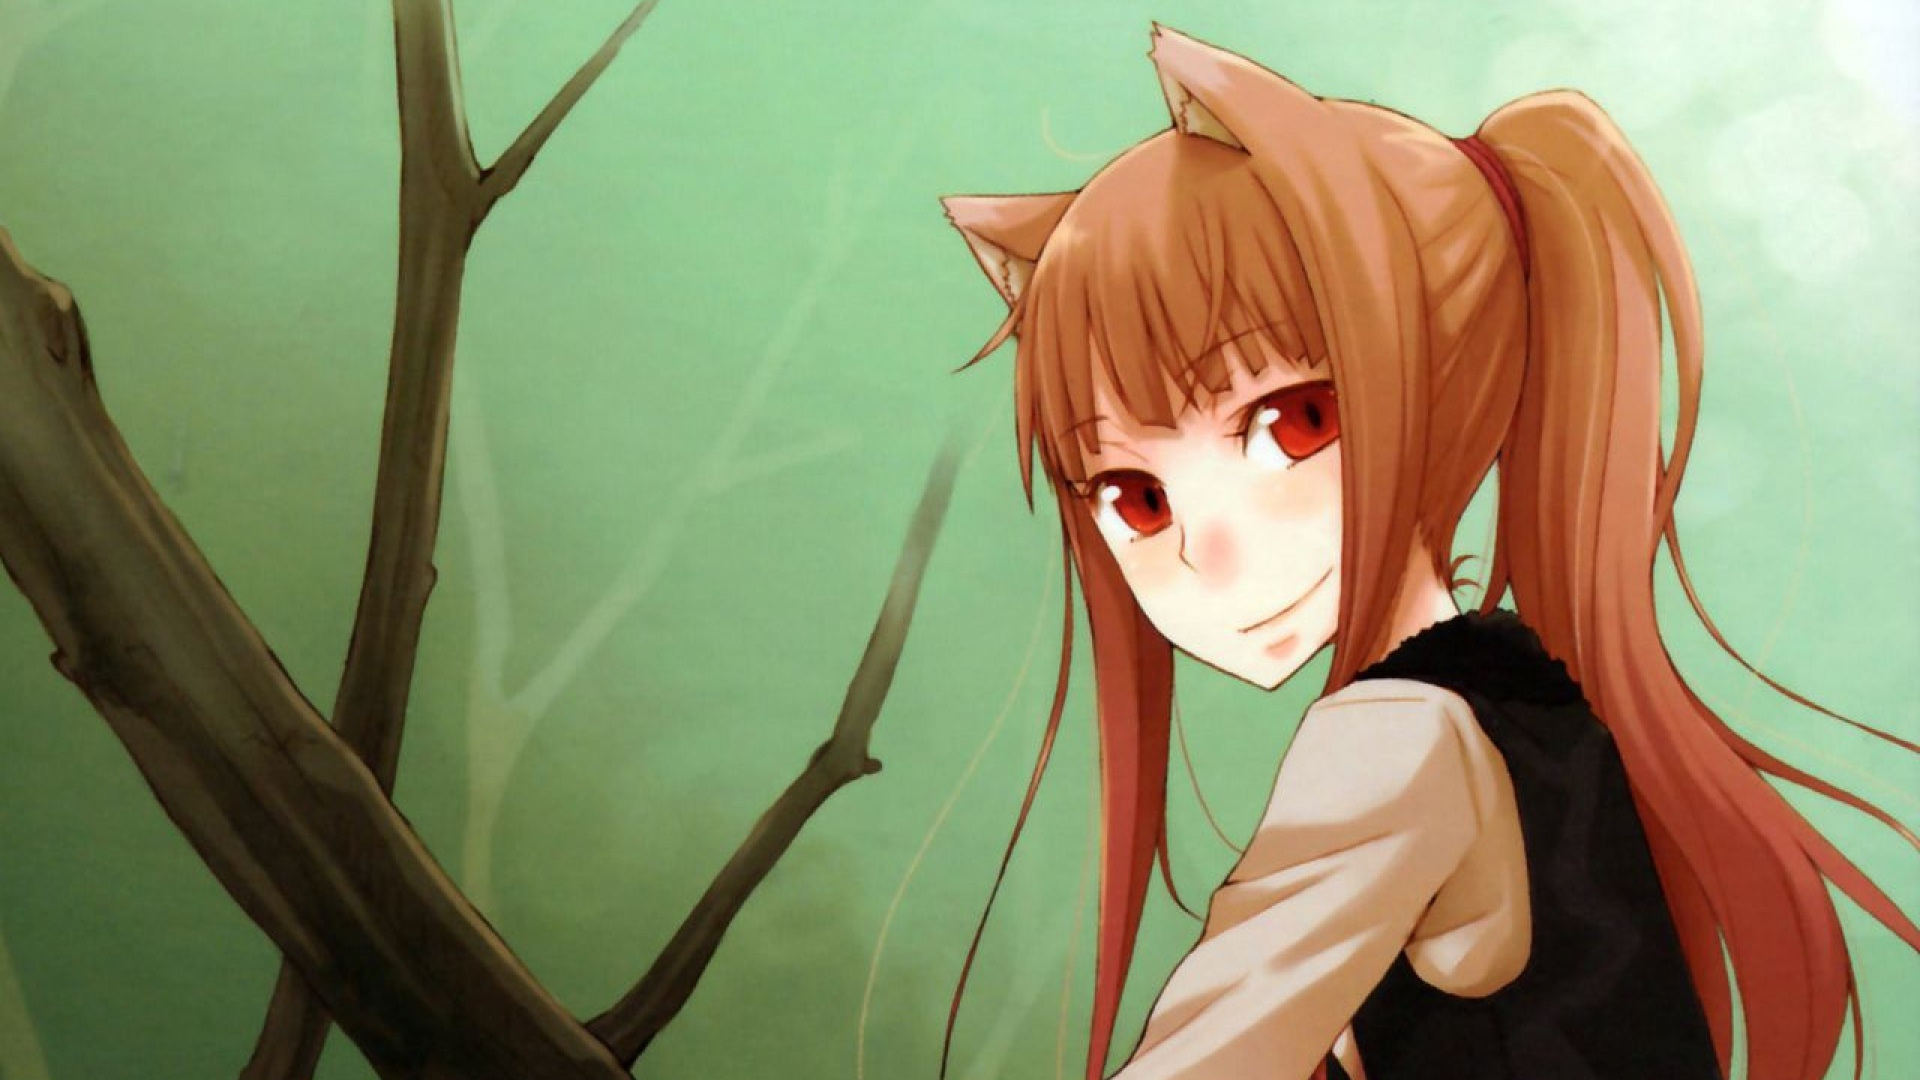 Download Wallpaper 1920x1080 Girl Smile Spice Wolf Trees Pose